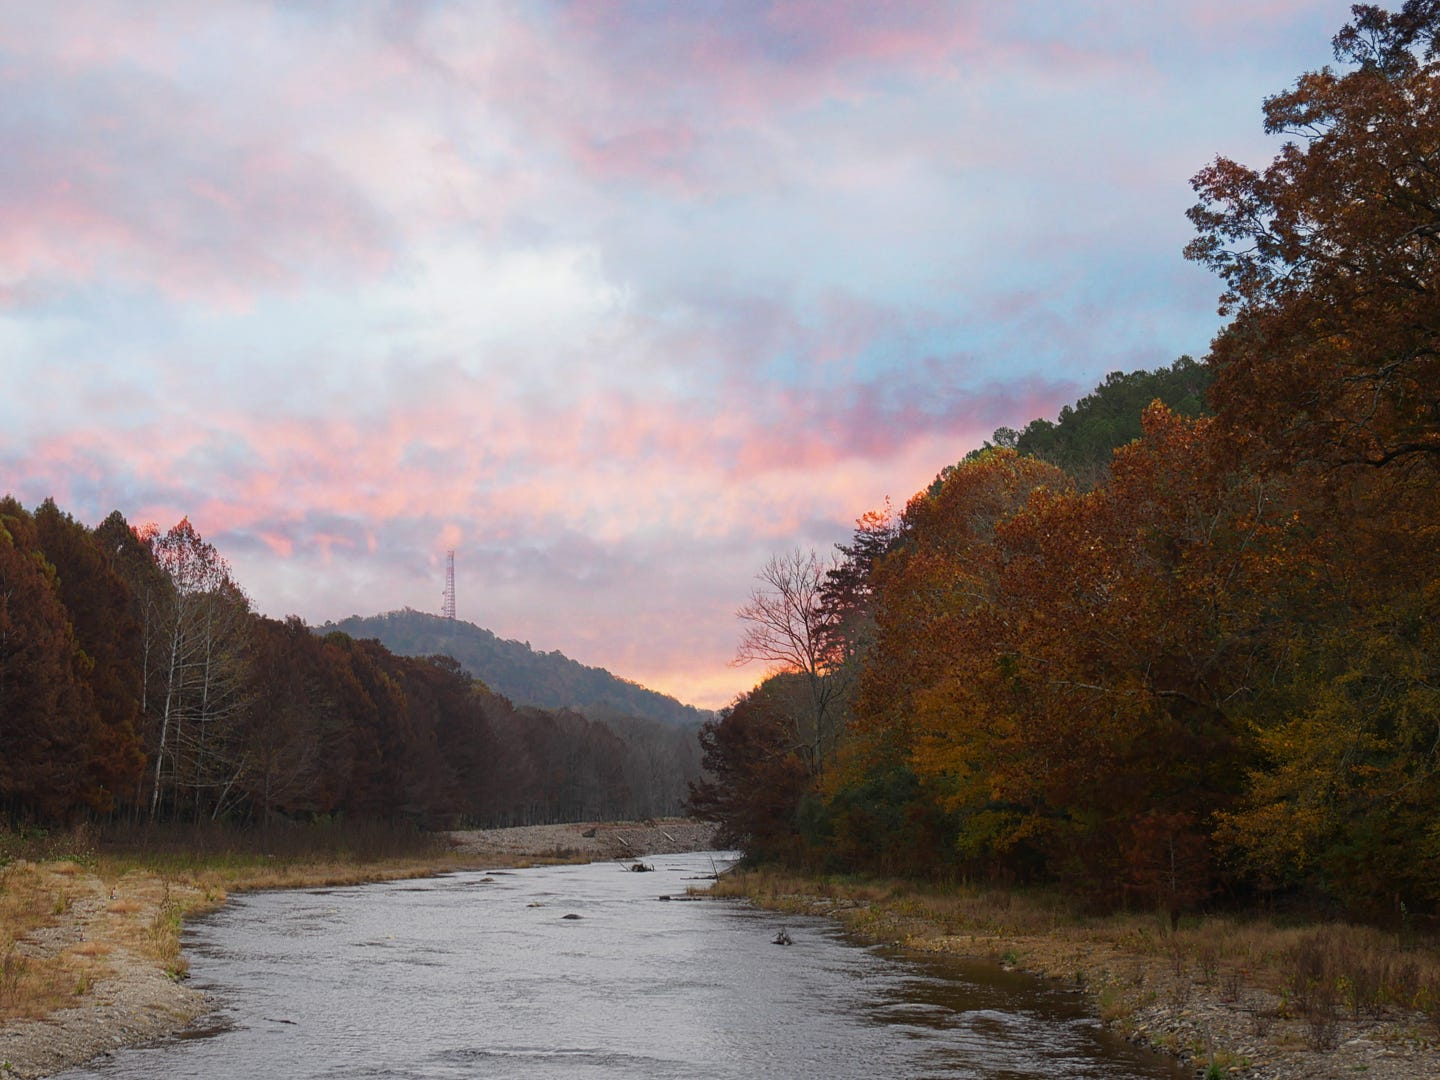 Oklahoma: Escape the city and head to Beavers Bend for outdoor adventures like zip lining and horseback riding, fishing and star gazing. Head into Broken Bow for artisan pizza at The Grateful Head and homemade fudge at Whipporwill Fudge Factory & Sweet Shoppe. When the day is done, turn in for the night in a luxury cabin. Using a trip-planning tool to plan your visit is one of the best ways to save money for your vacation. The Grateful Head Create Your Own Large Cheese Pizza: $14.12.